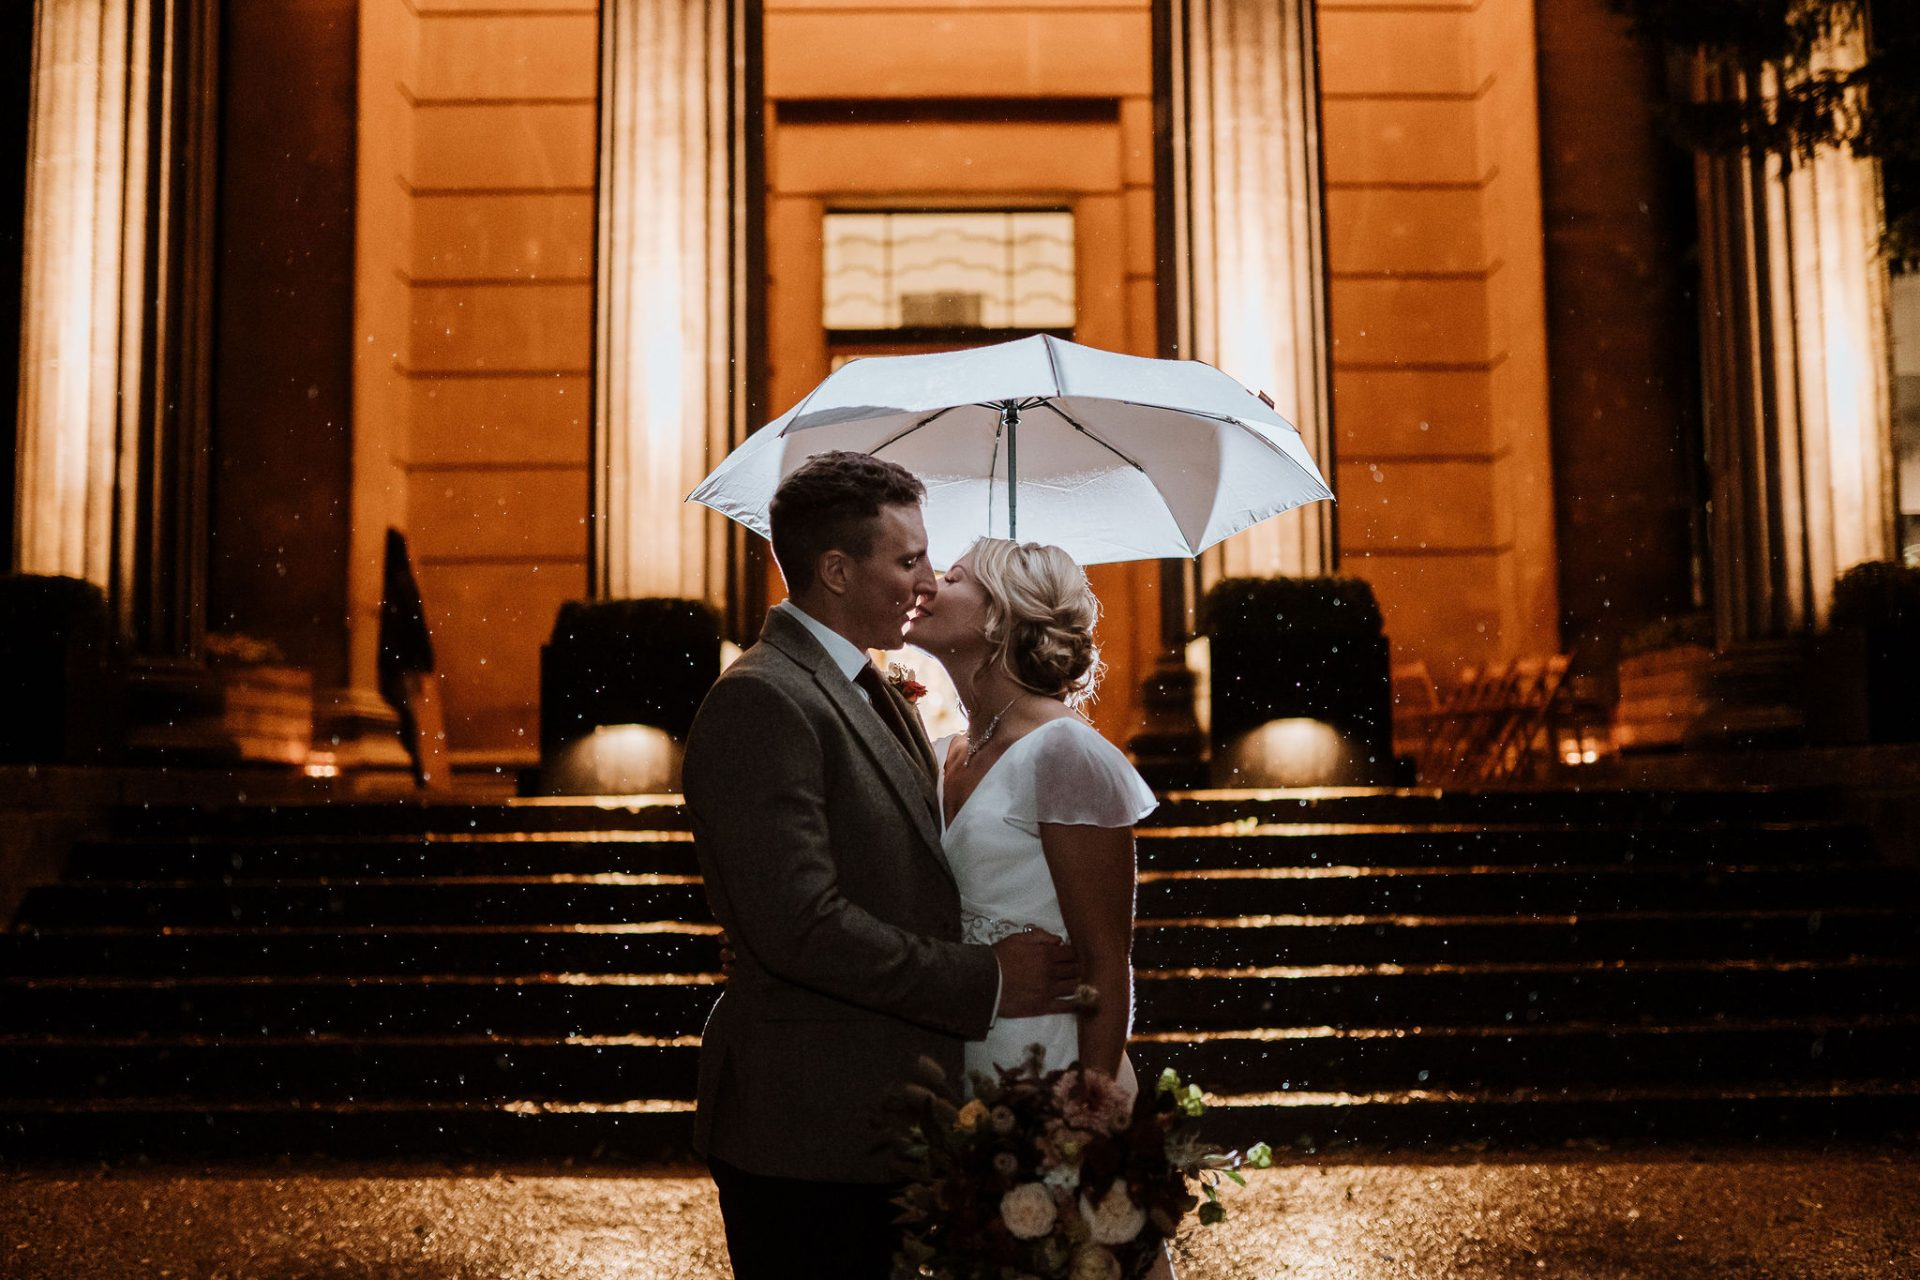 bride and groom in front of the spielman centre arnos vale backlit umbrella in the rain at night